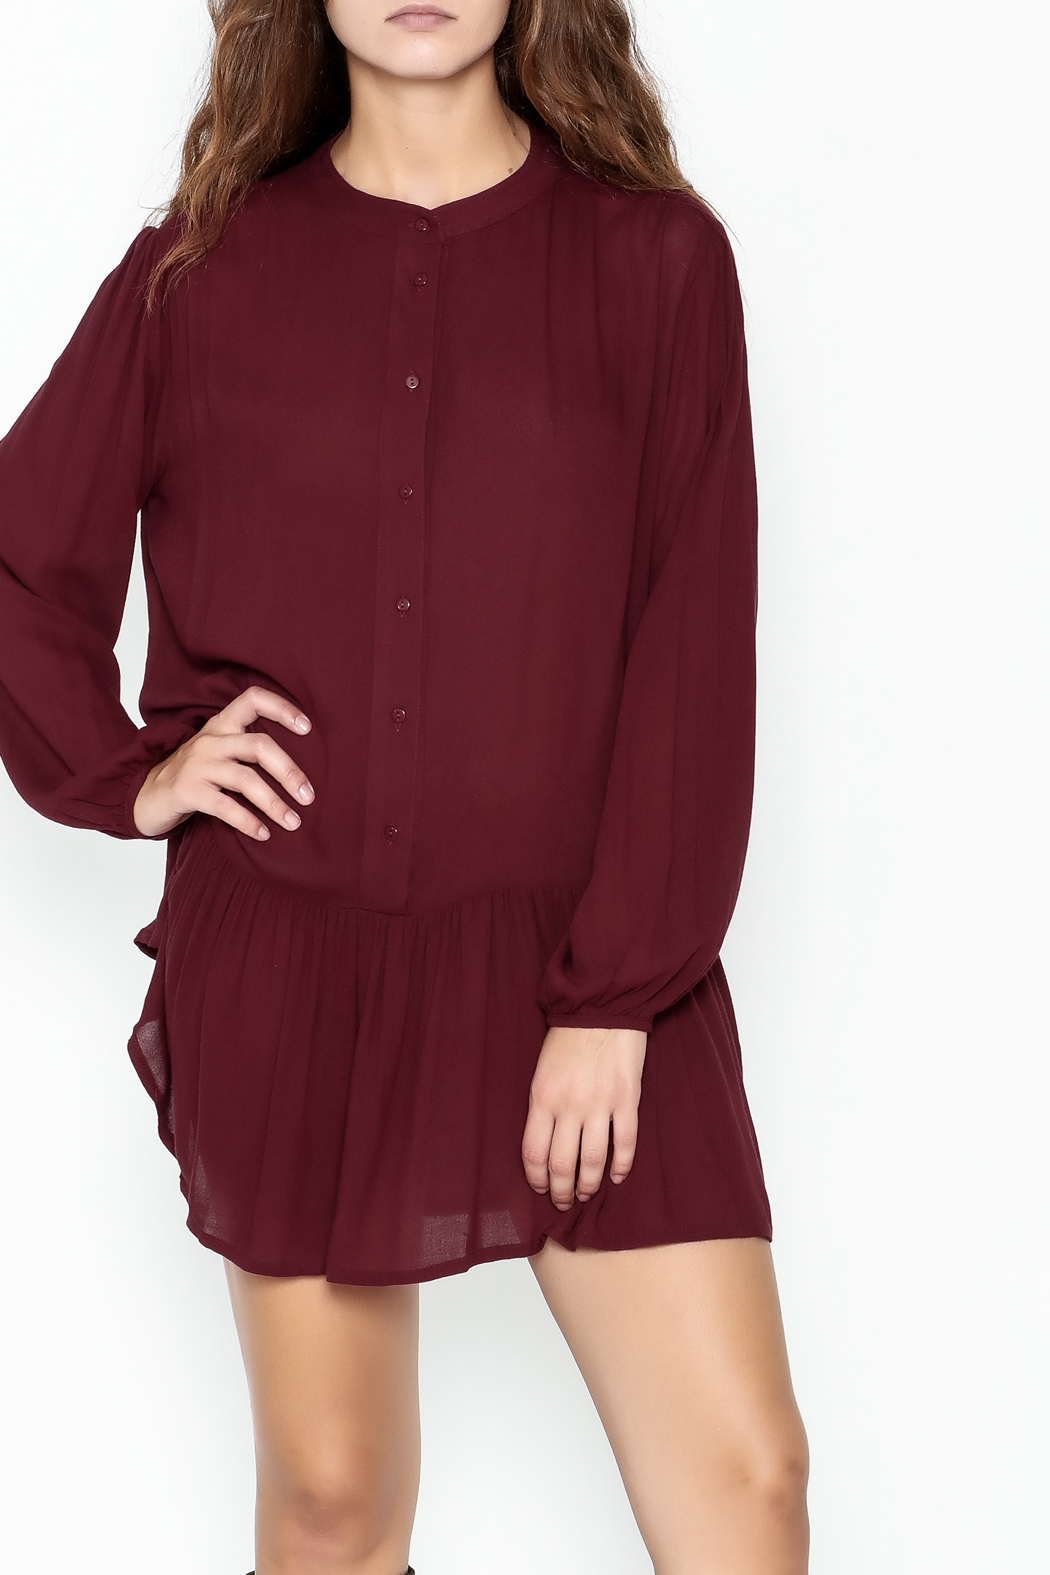 ee:some Button Down Tunic Dress - Front Cropped Image